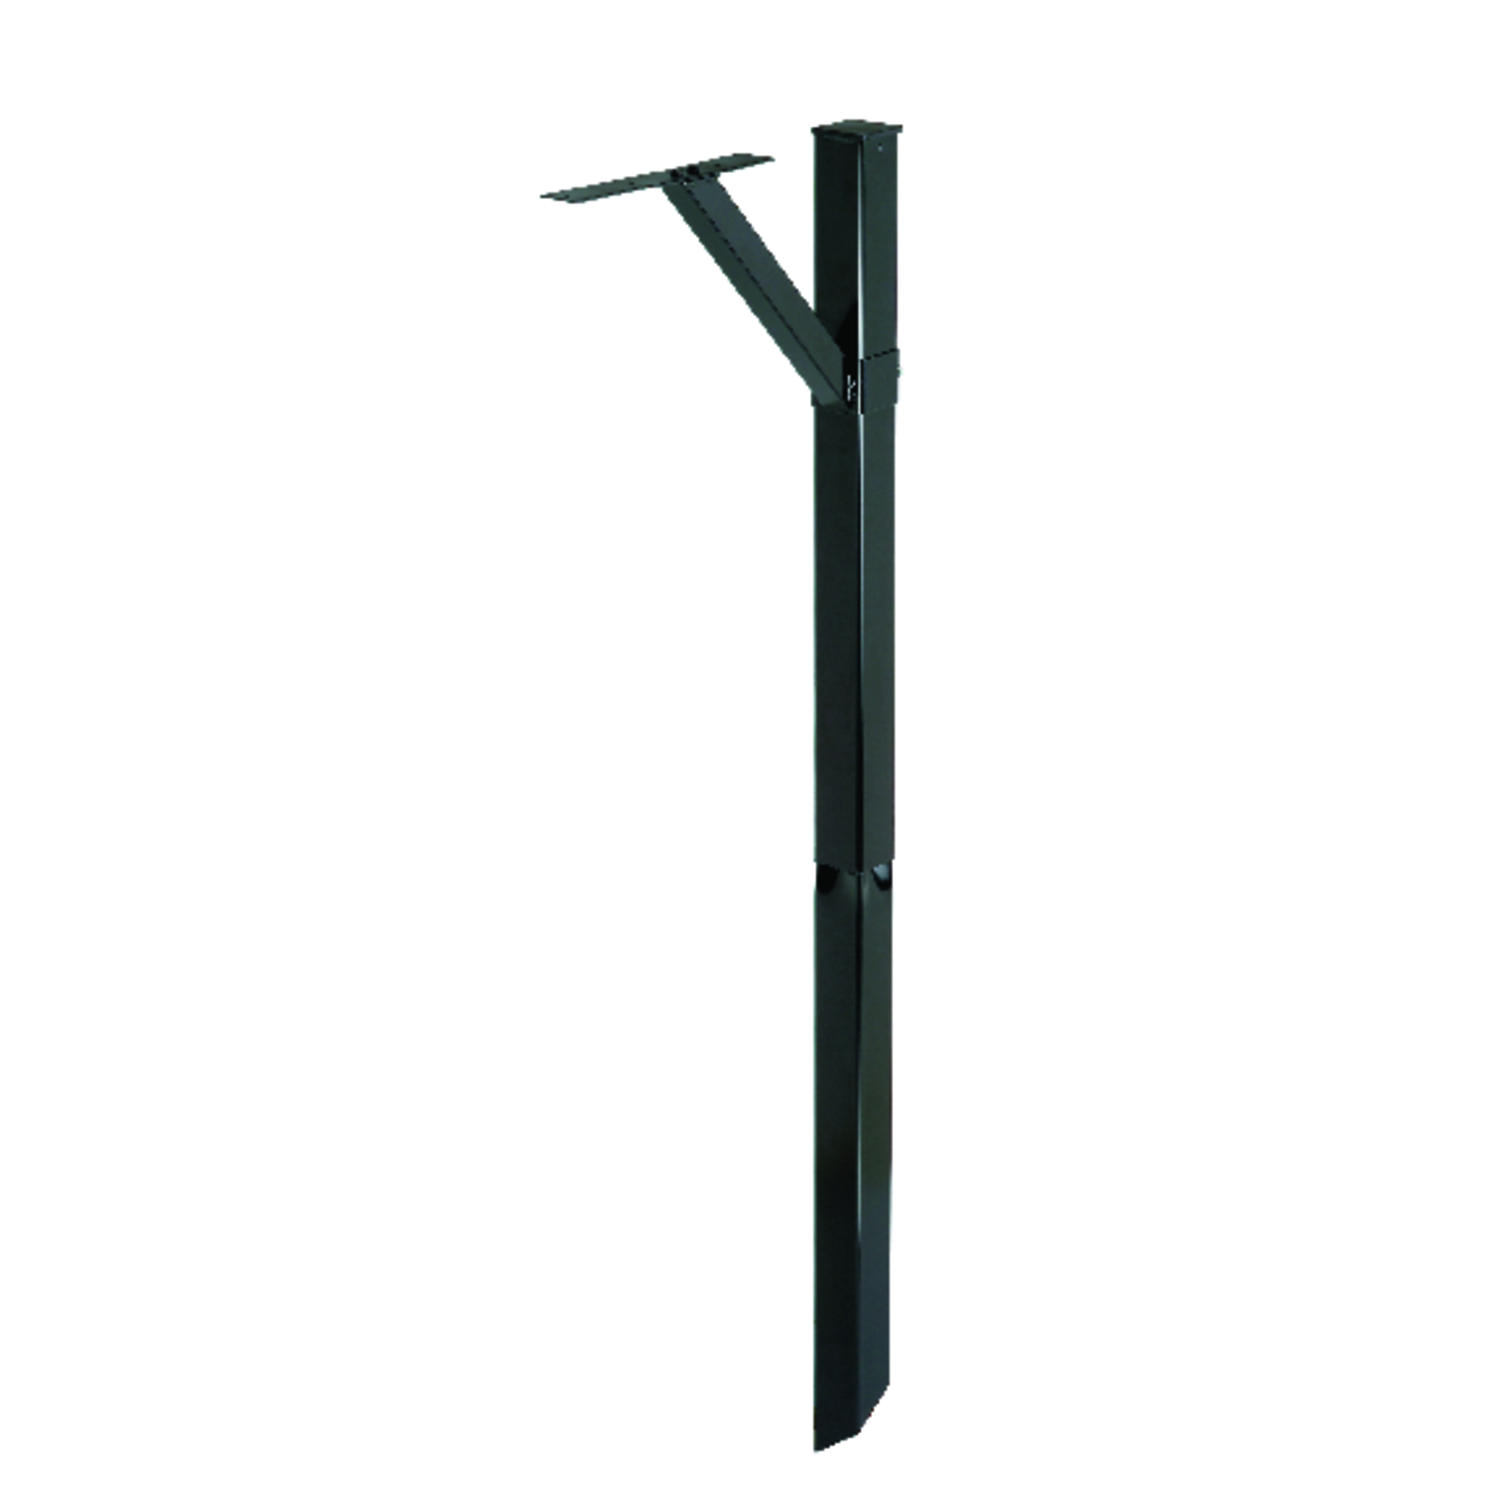 Gibraltar Mailboxes  34 in. H x 20-9/32 in. D x 5-1/2 in. W Powder Coated  Black  Steel  Mailbox Pos